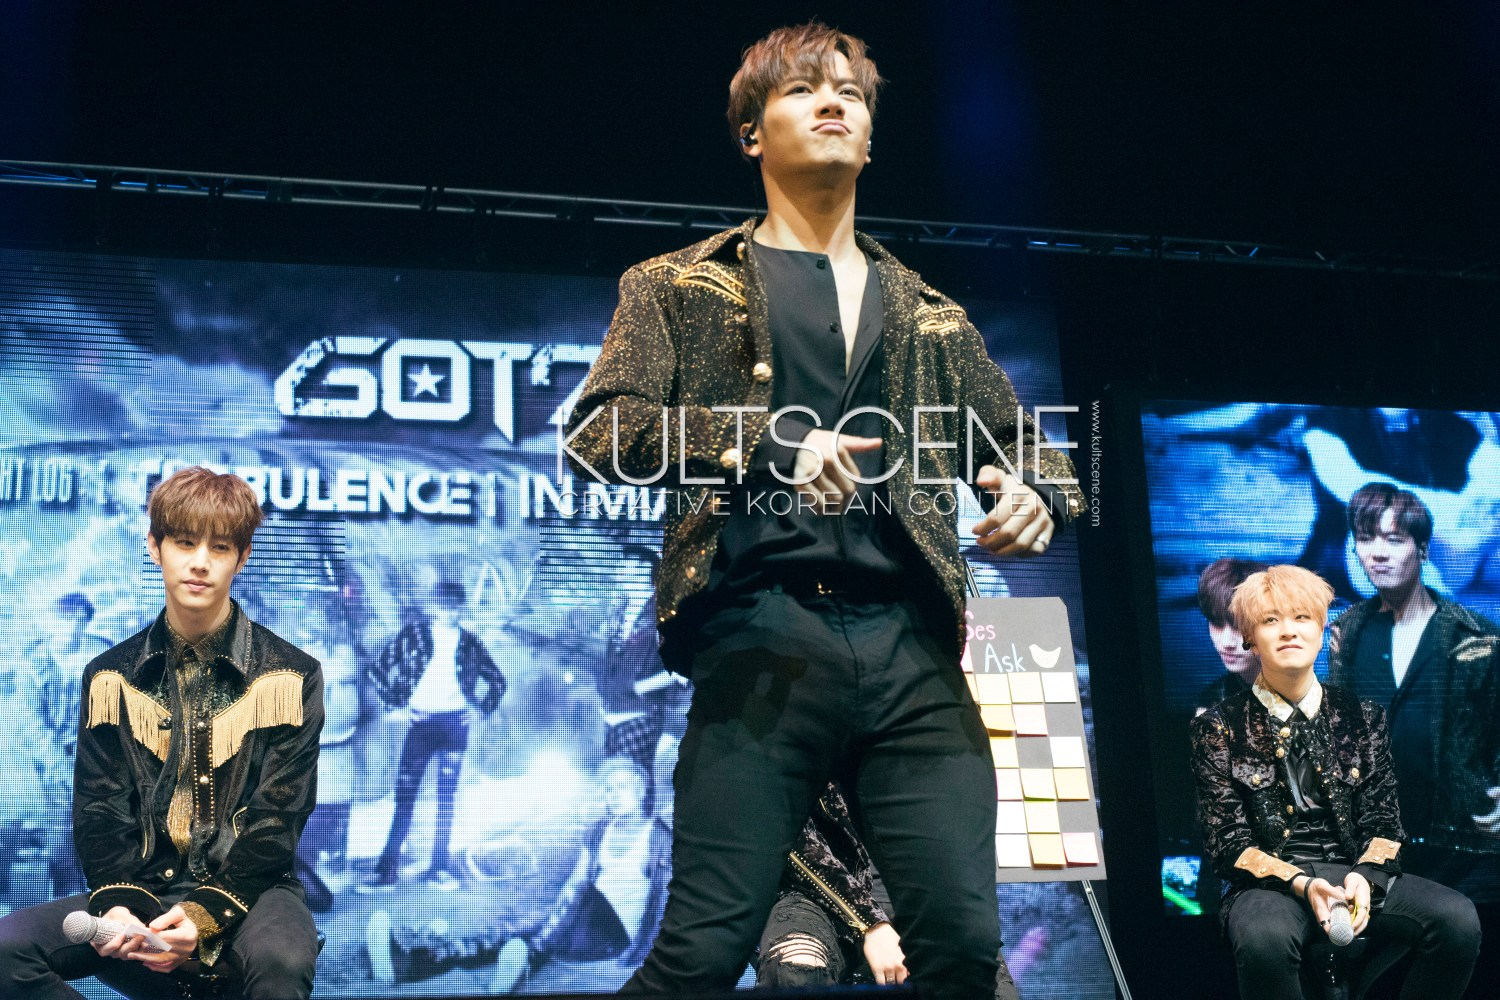 GOT7 #TurbulenceinMIA Mark Tuan Jackson Wang Choi Youngjae